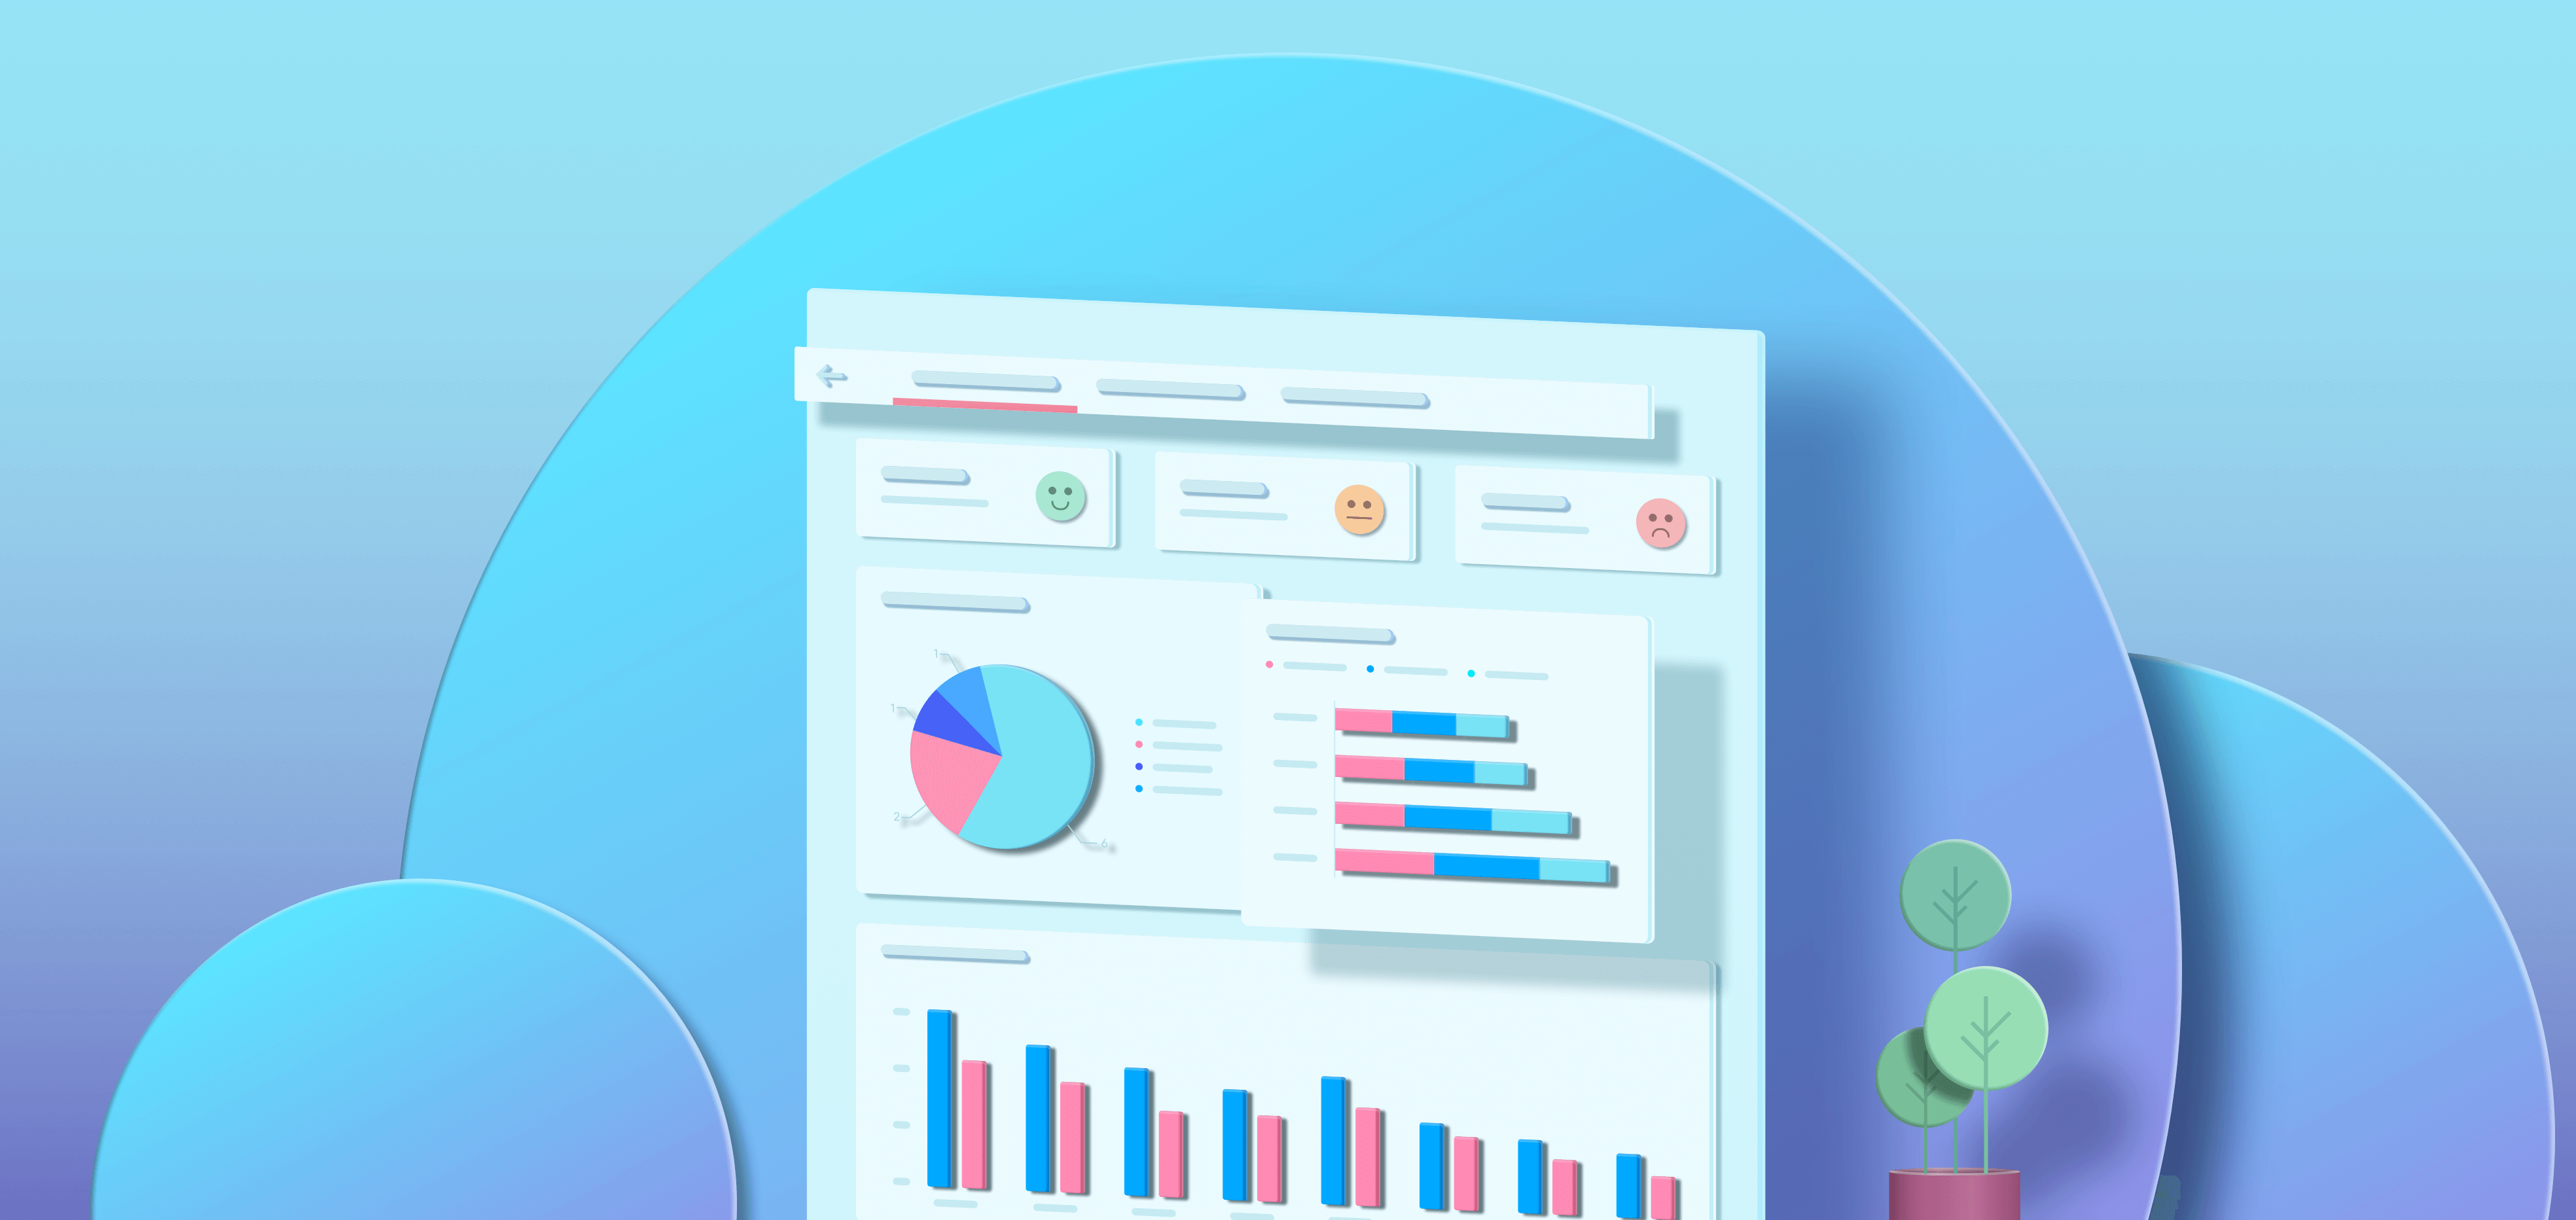 Your Business Dashboard has More to Reveal | Bold BI